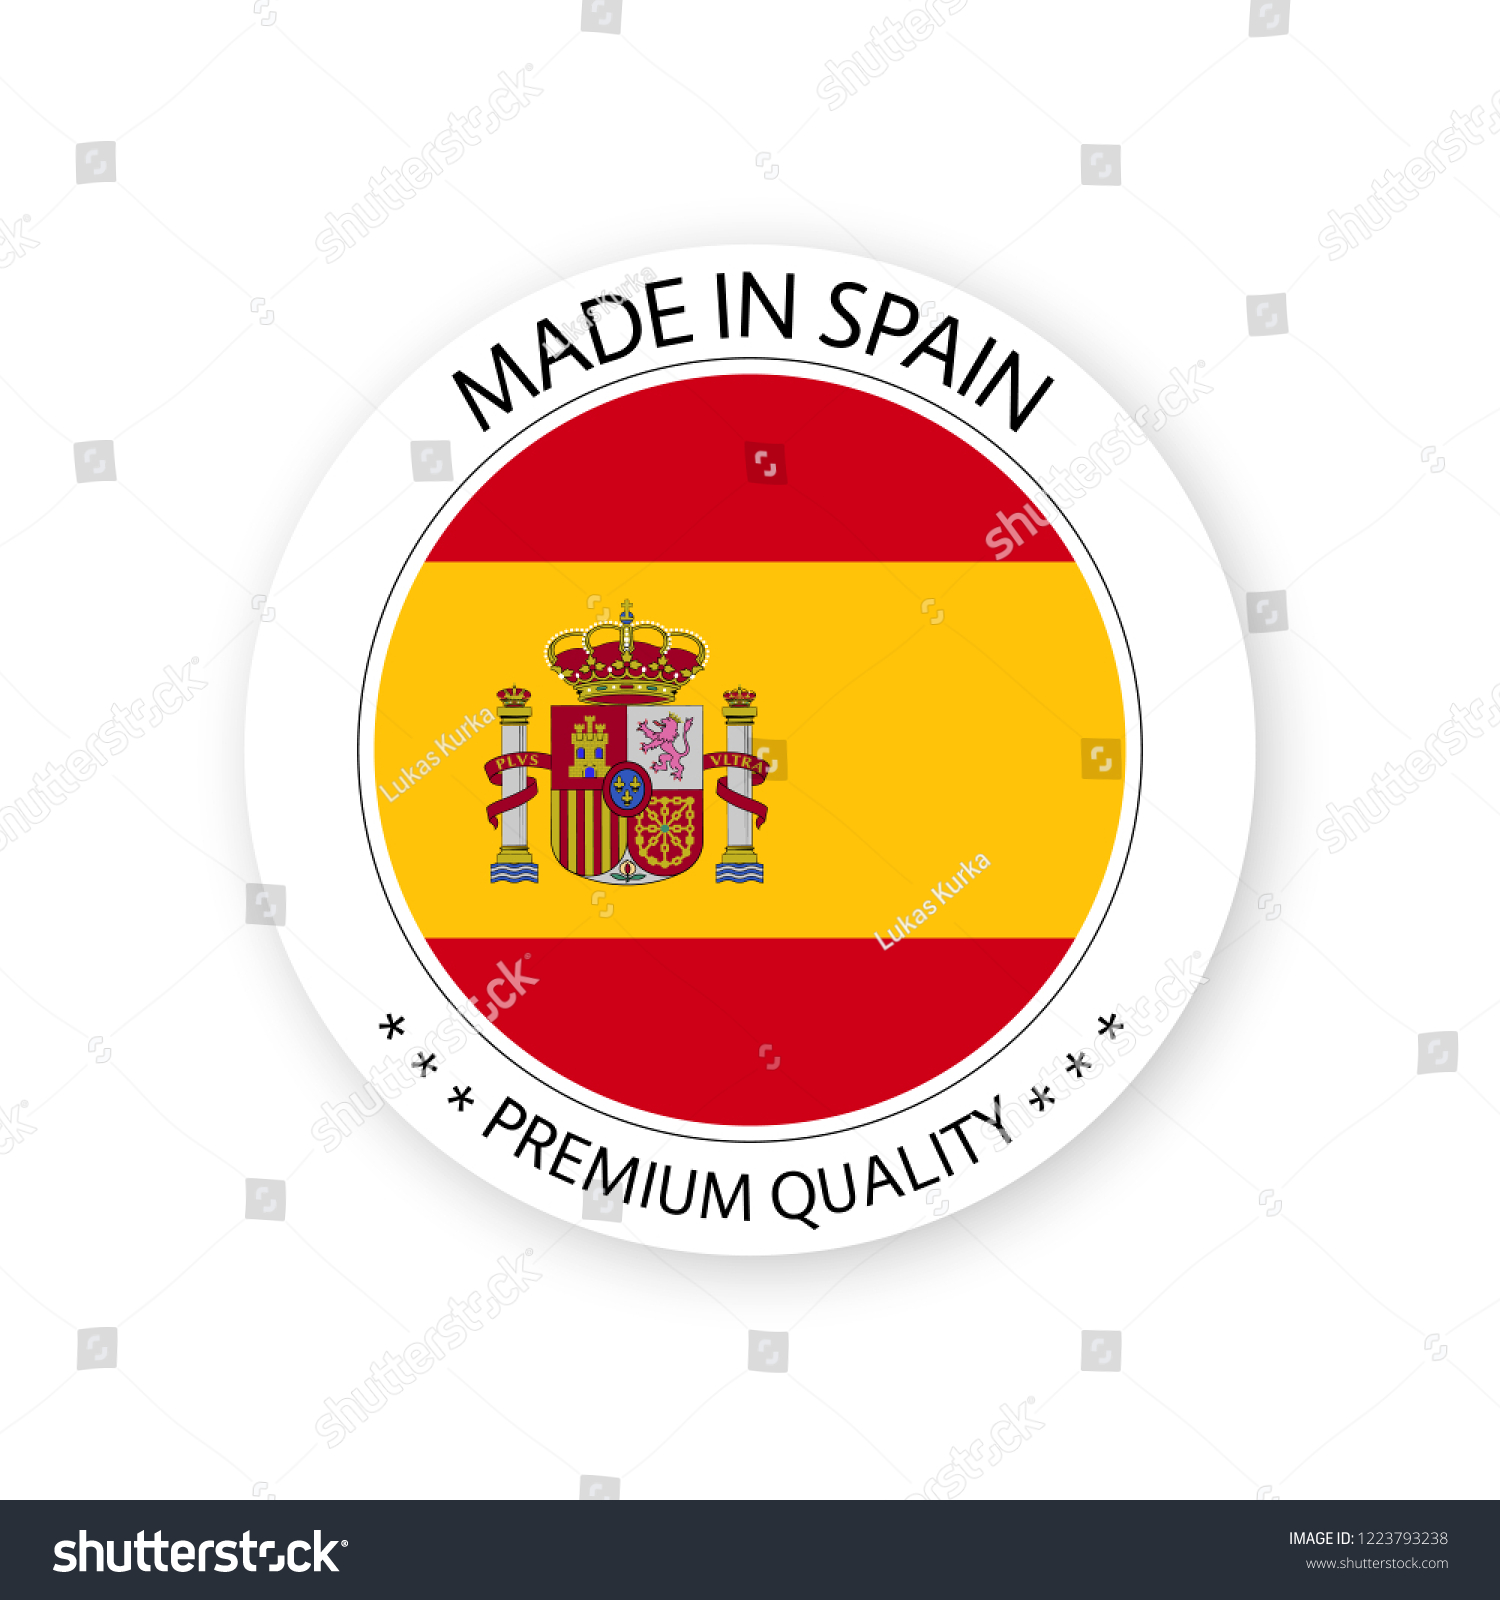 Modern Vector Made Spain Label Isolated Stock Vector Royalty Free ...